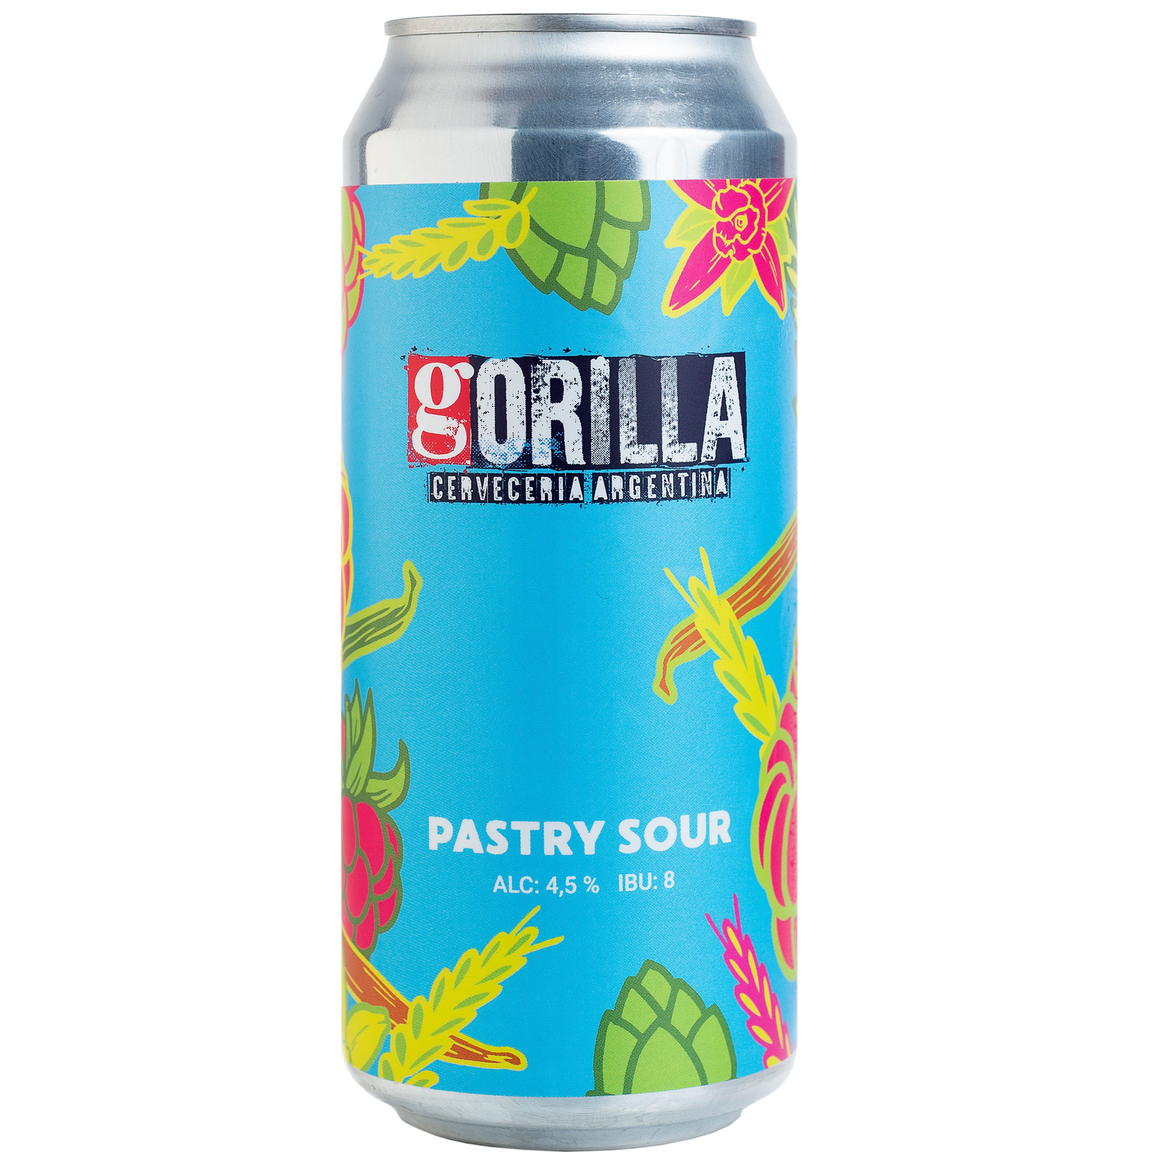 Gorilla Pastry Sour Strawberry Berliner Weisse